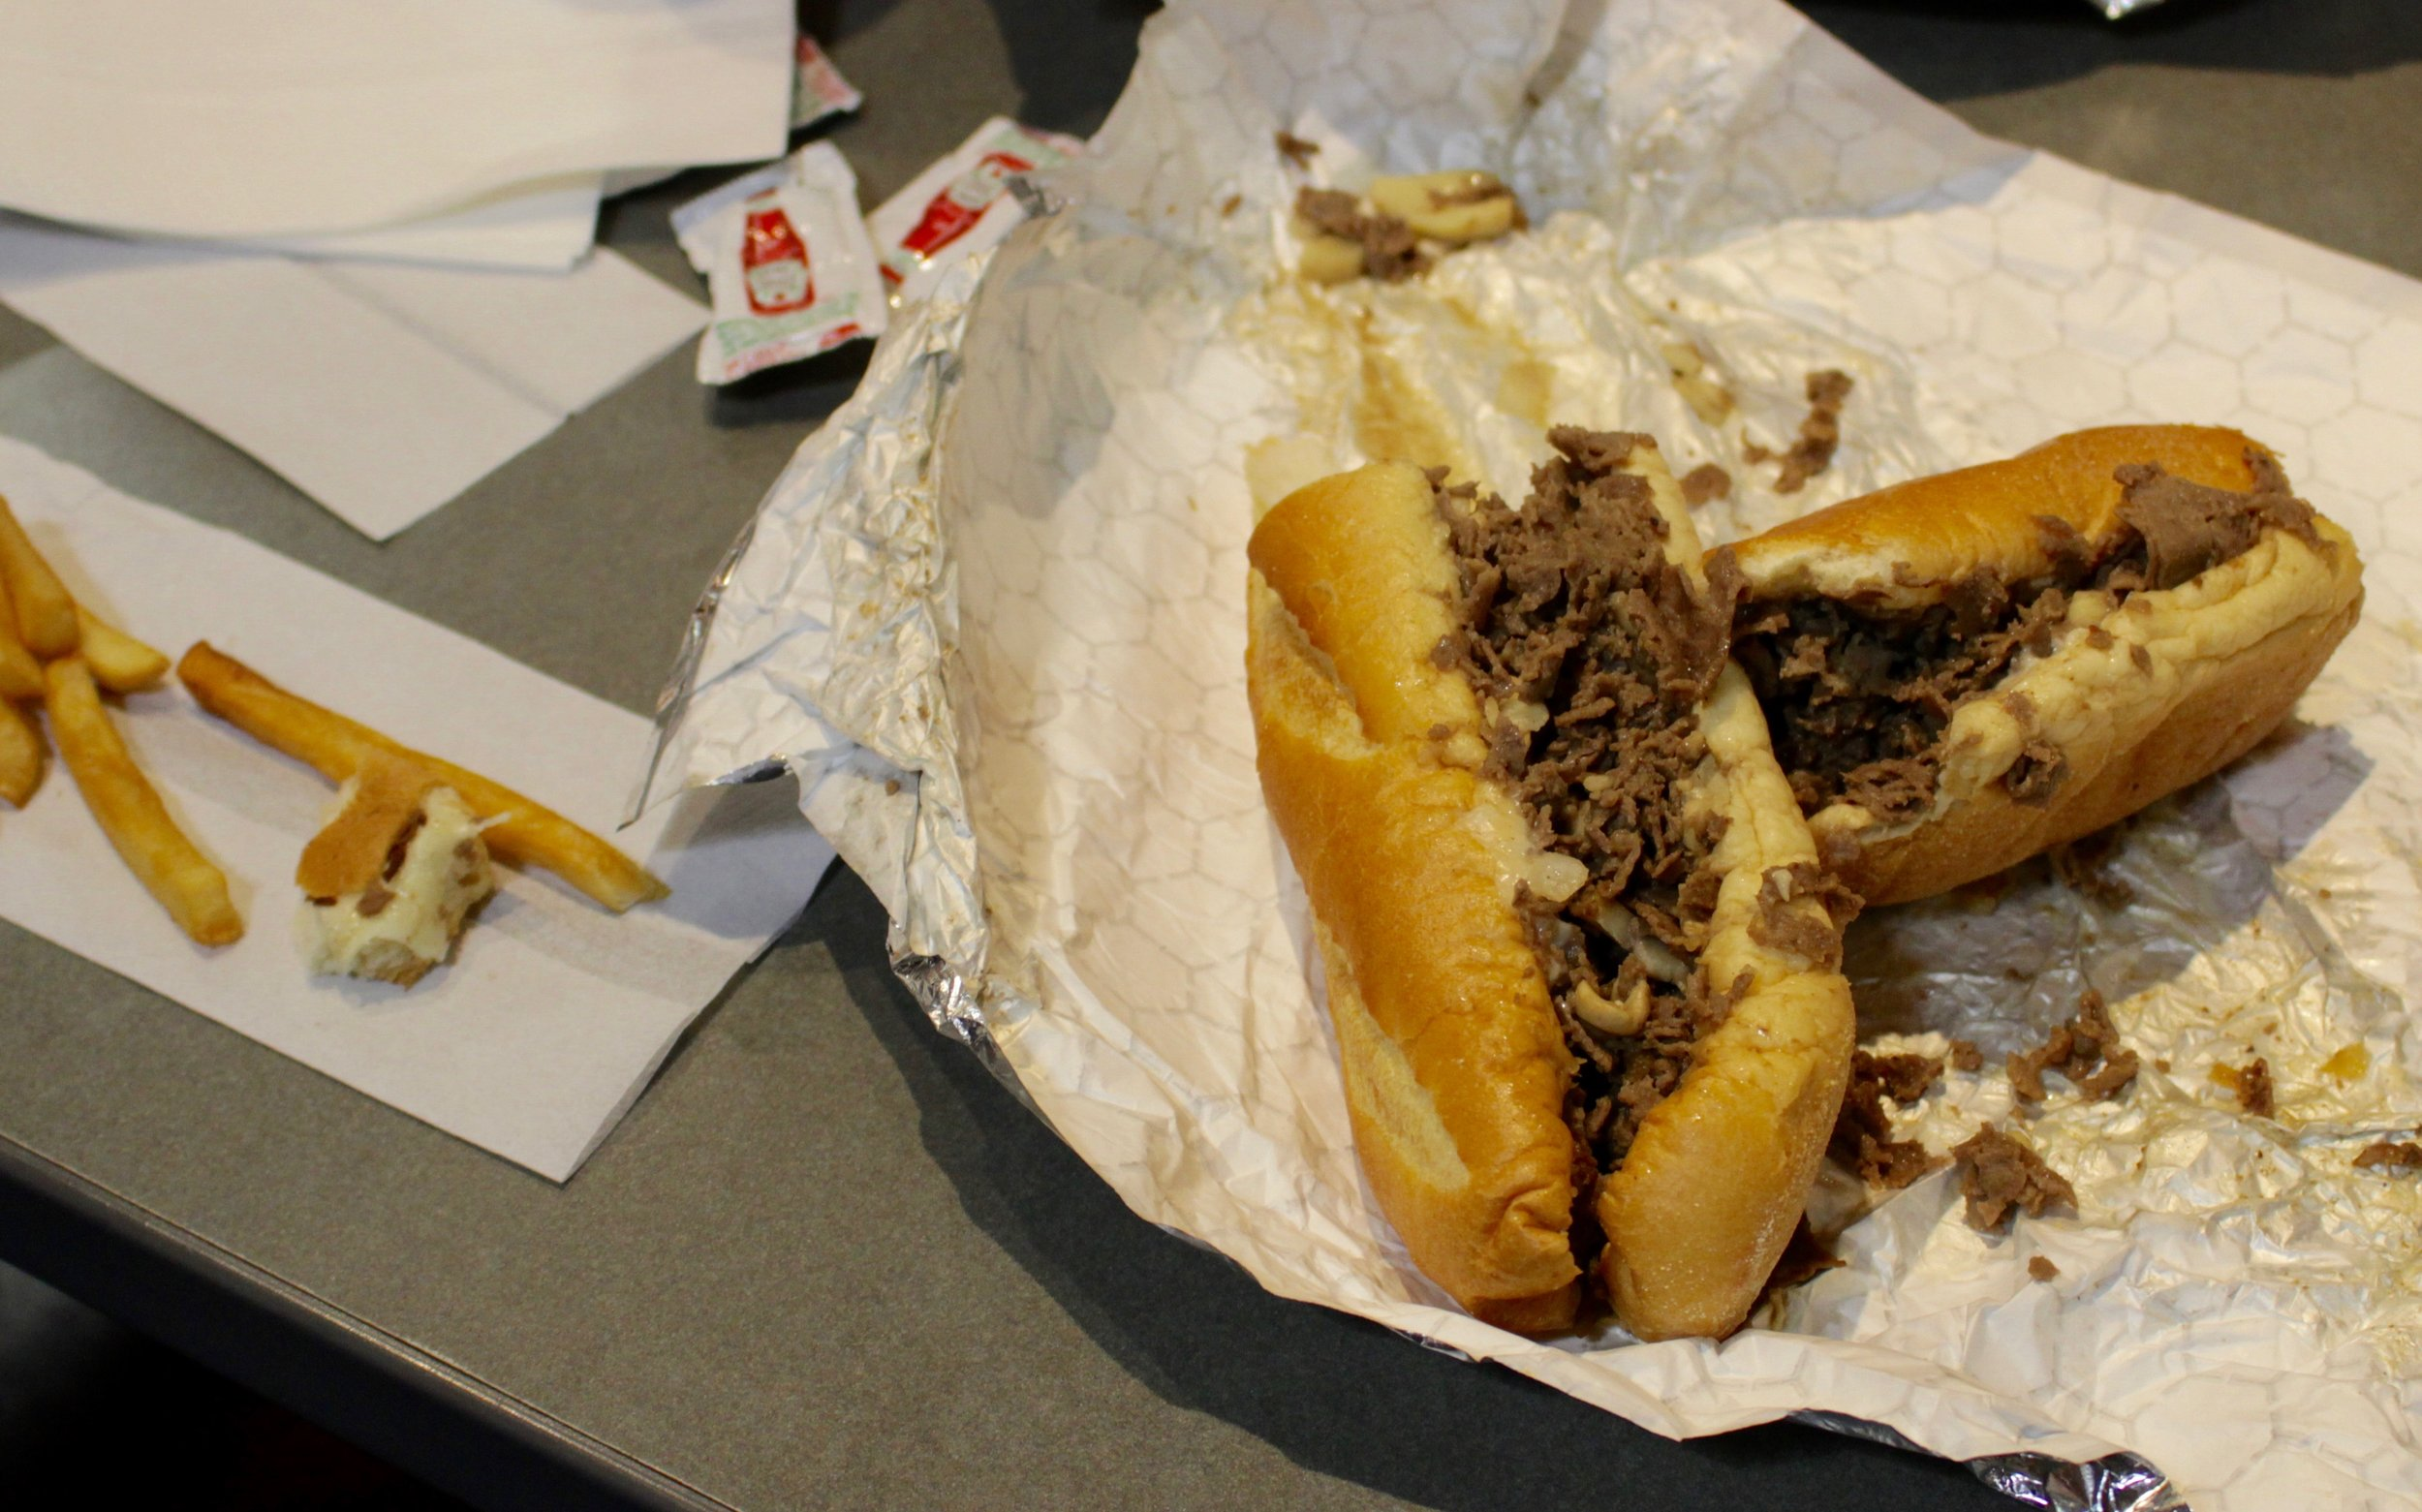 If you think you've eaten a Philadelphia cheesesteak, but you've never been to Philadelphia, you're wrong.